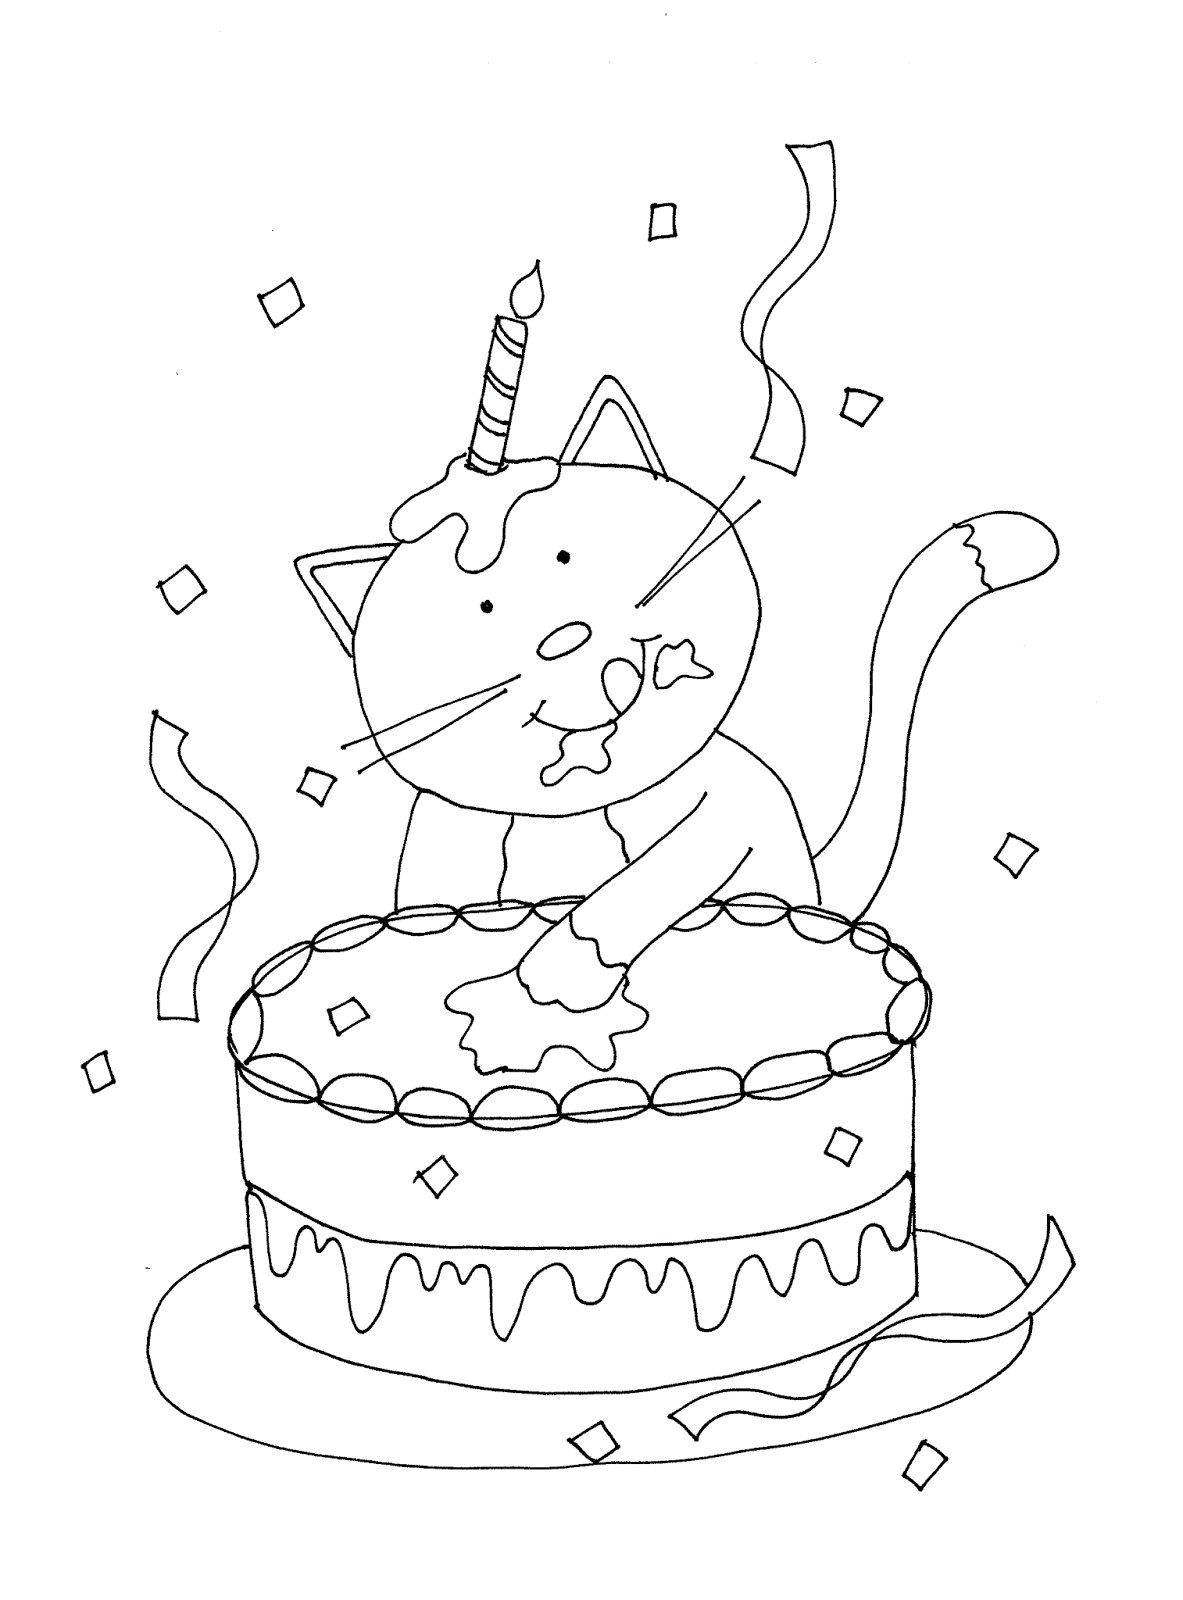 happy birthday cat coloring page pin by kitcat on creative inklings digi stamps happy cat page birthday happy coloring